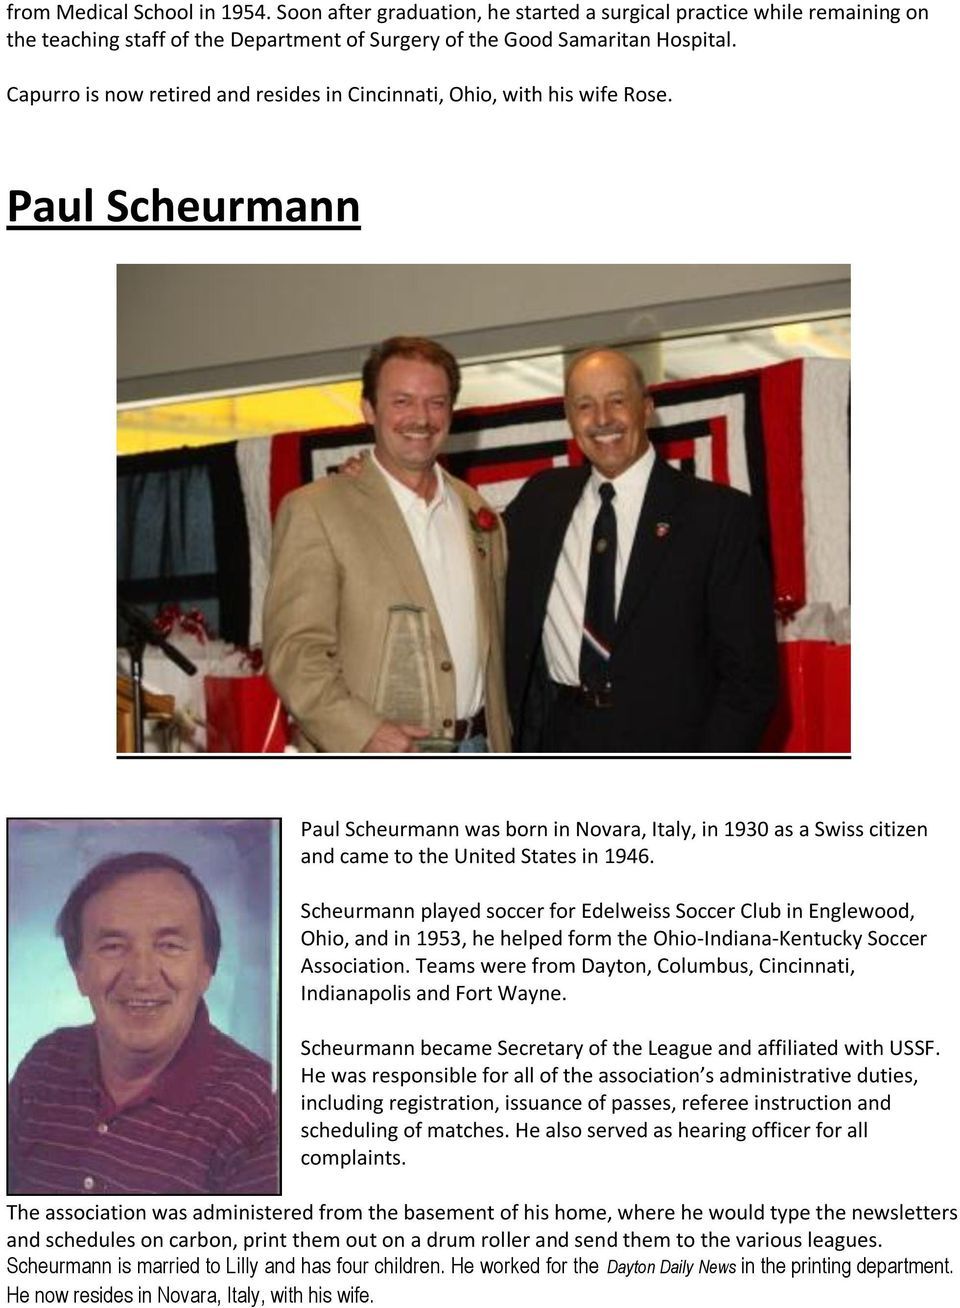 Scheurmann played soccer for Edelweiss Soccer Club in Englewood, Ohio, and in 1953, he helped form the Ohio-Indiana-Kentucky Soccer Association.